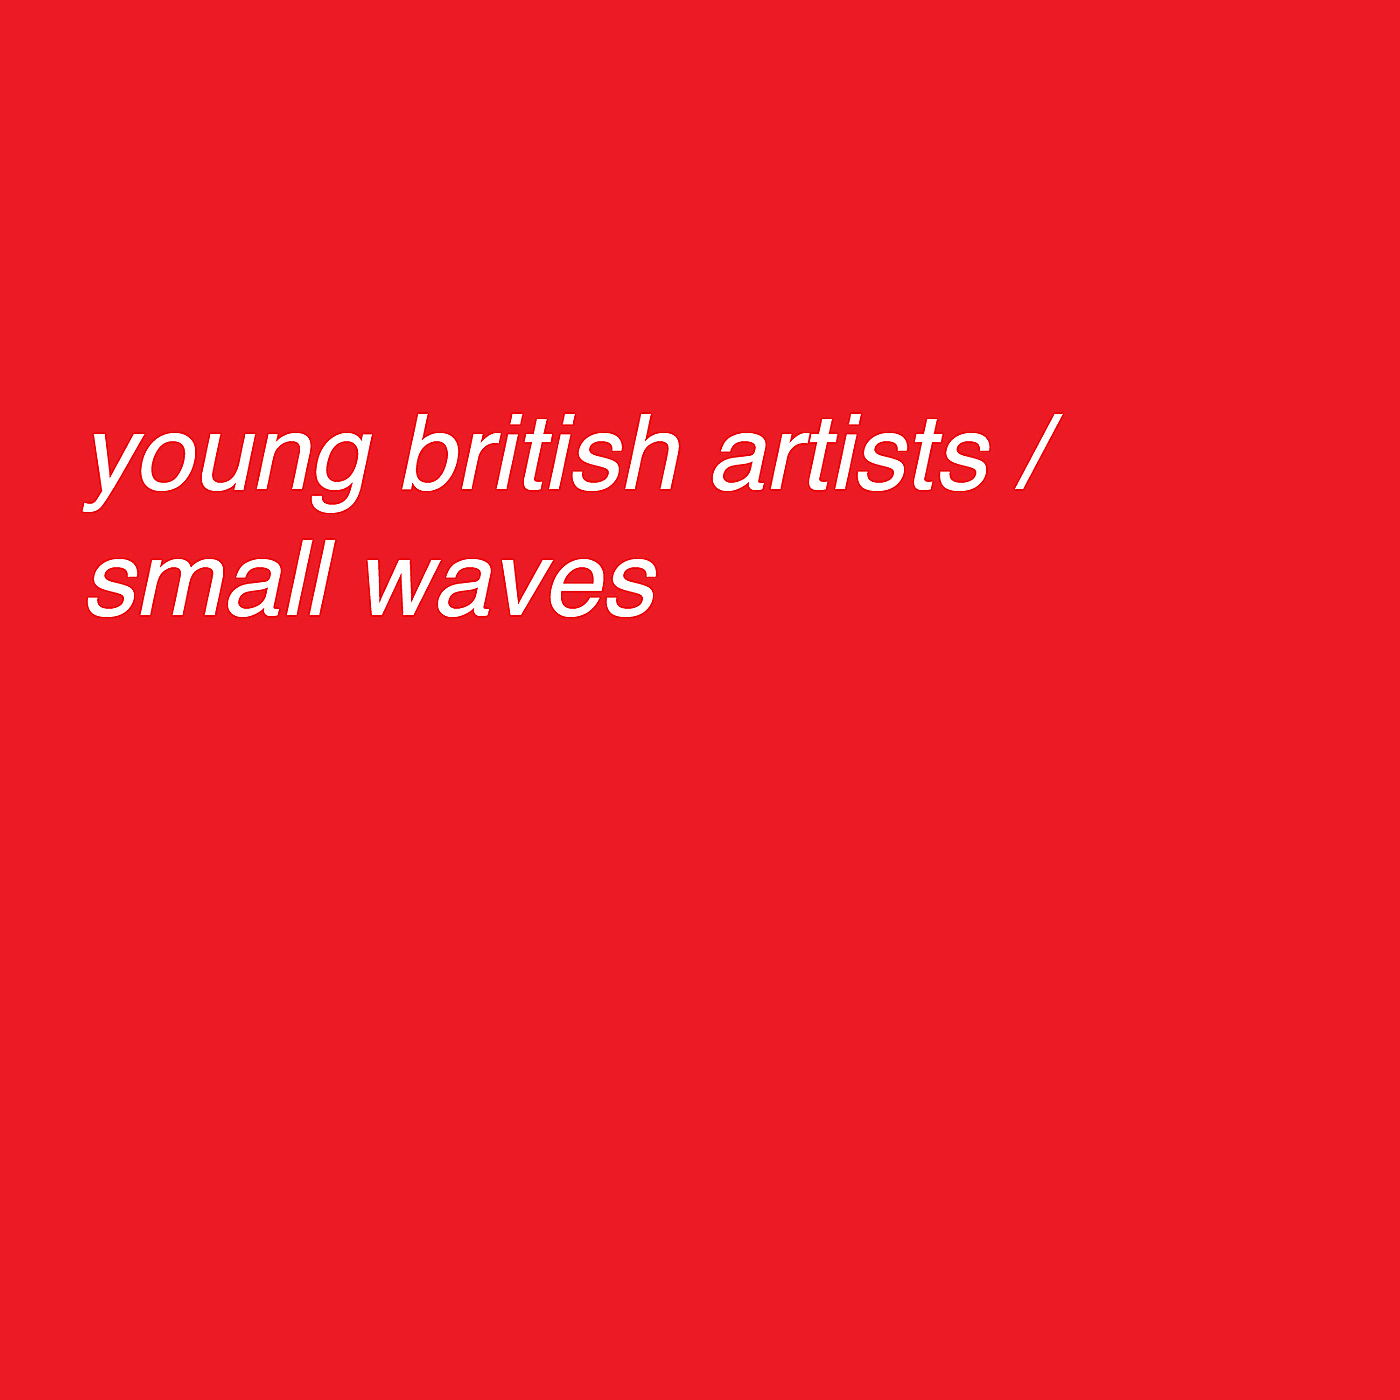 young british artists essay While it's not as easy for authors to become famous at a young age as it is for pop singers, it's still not unheard of for barely legal authors to find fame, success, and even fortune.